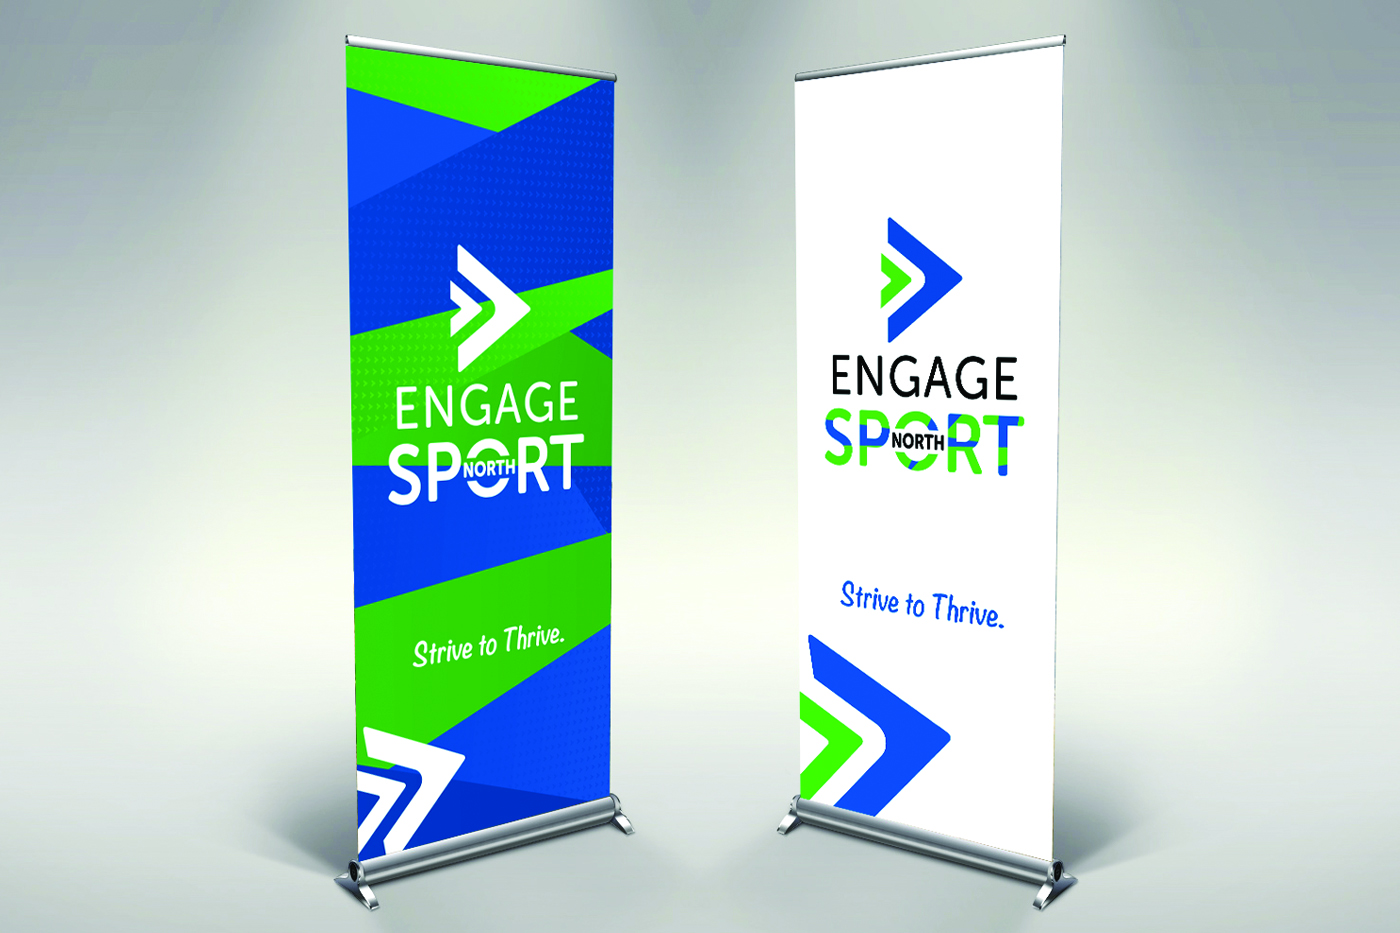 Engage-Sport-North-Rollup-solo-banner-design.jpg